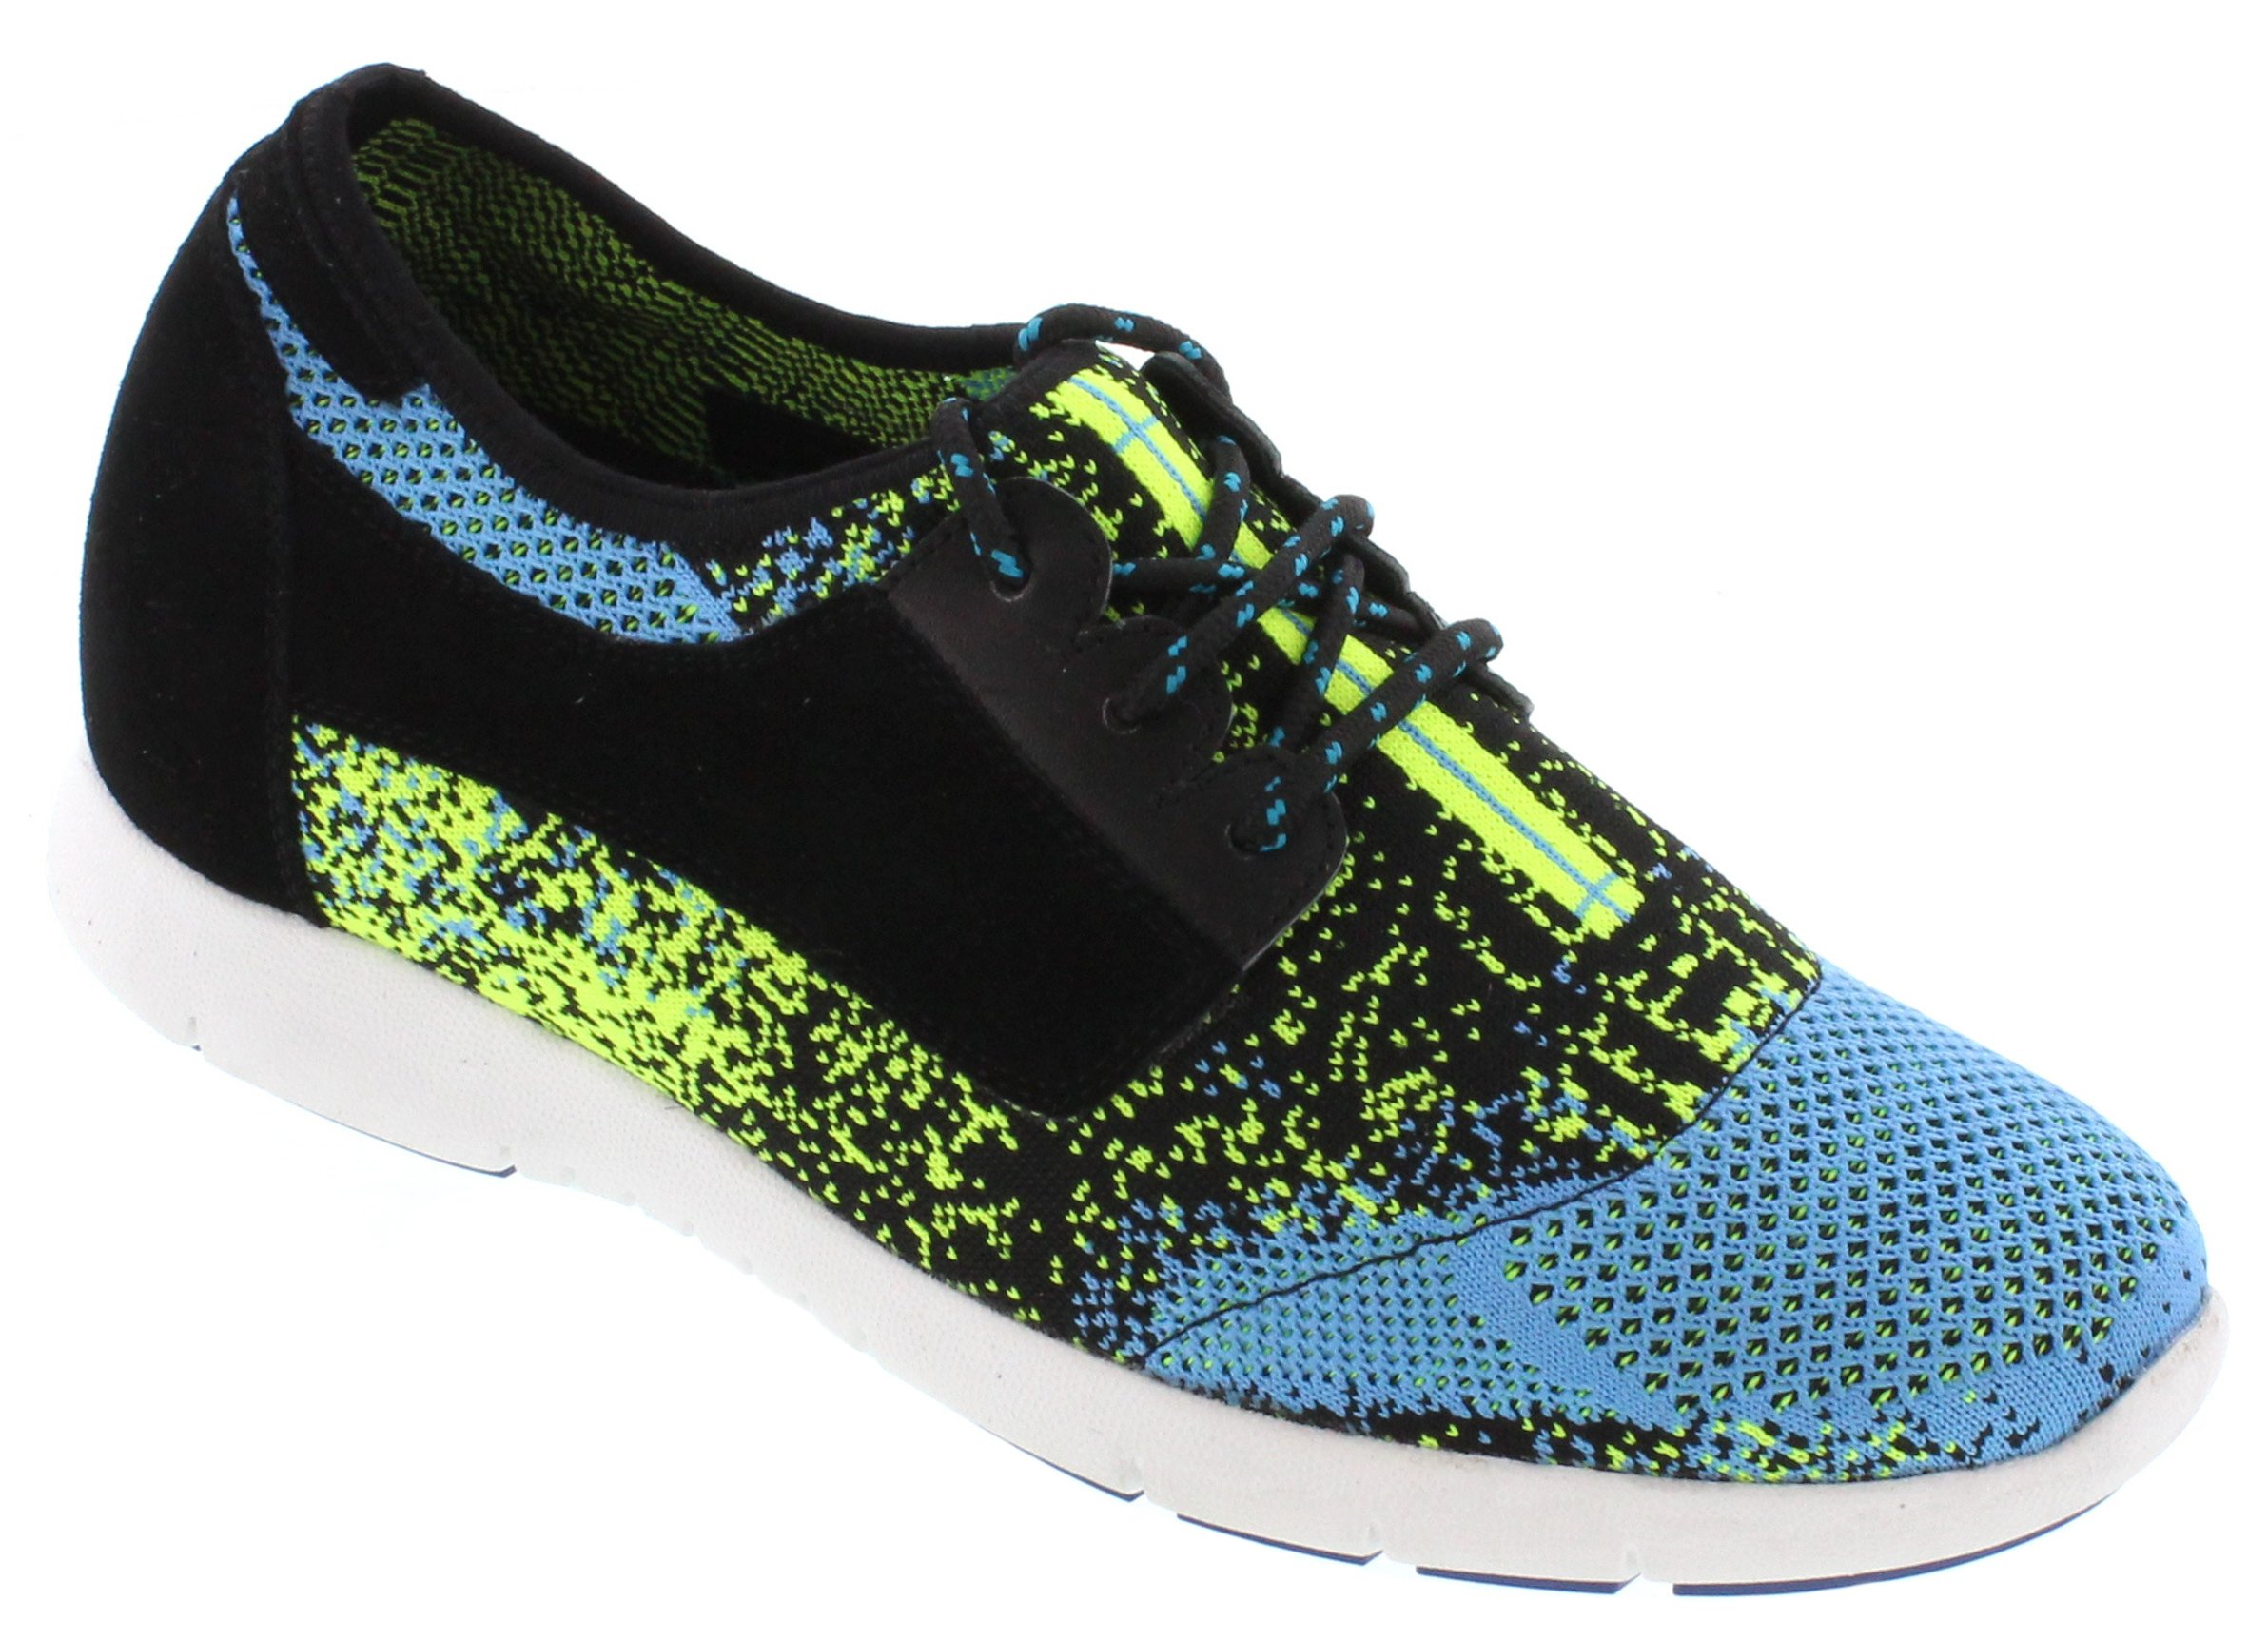 Toto D62106-2.8 inches Taller - Size 10 D US - Height Increasing Elevator Shoes - Neon/Black/Blue Lace-up Super Lightweight Sneaker